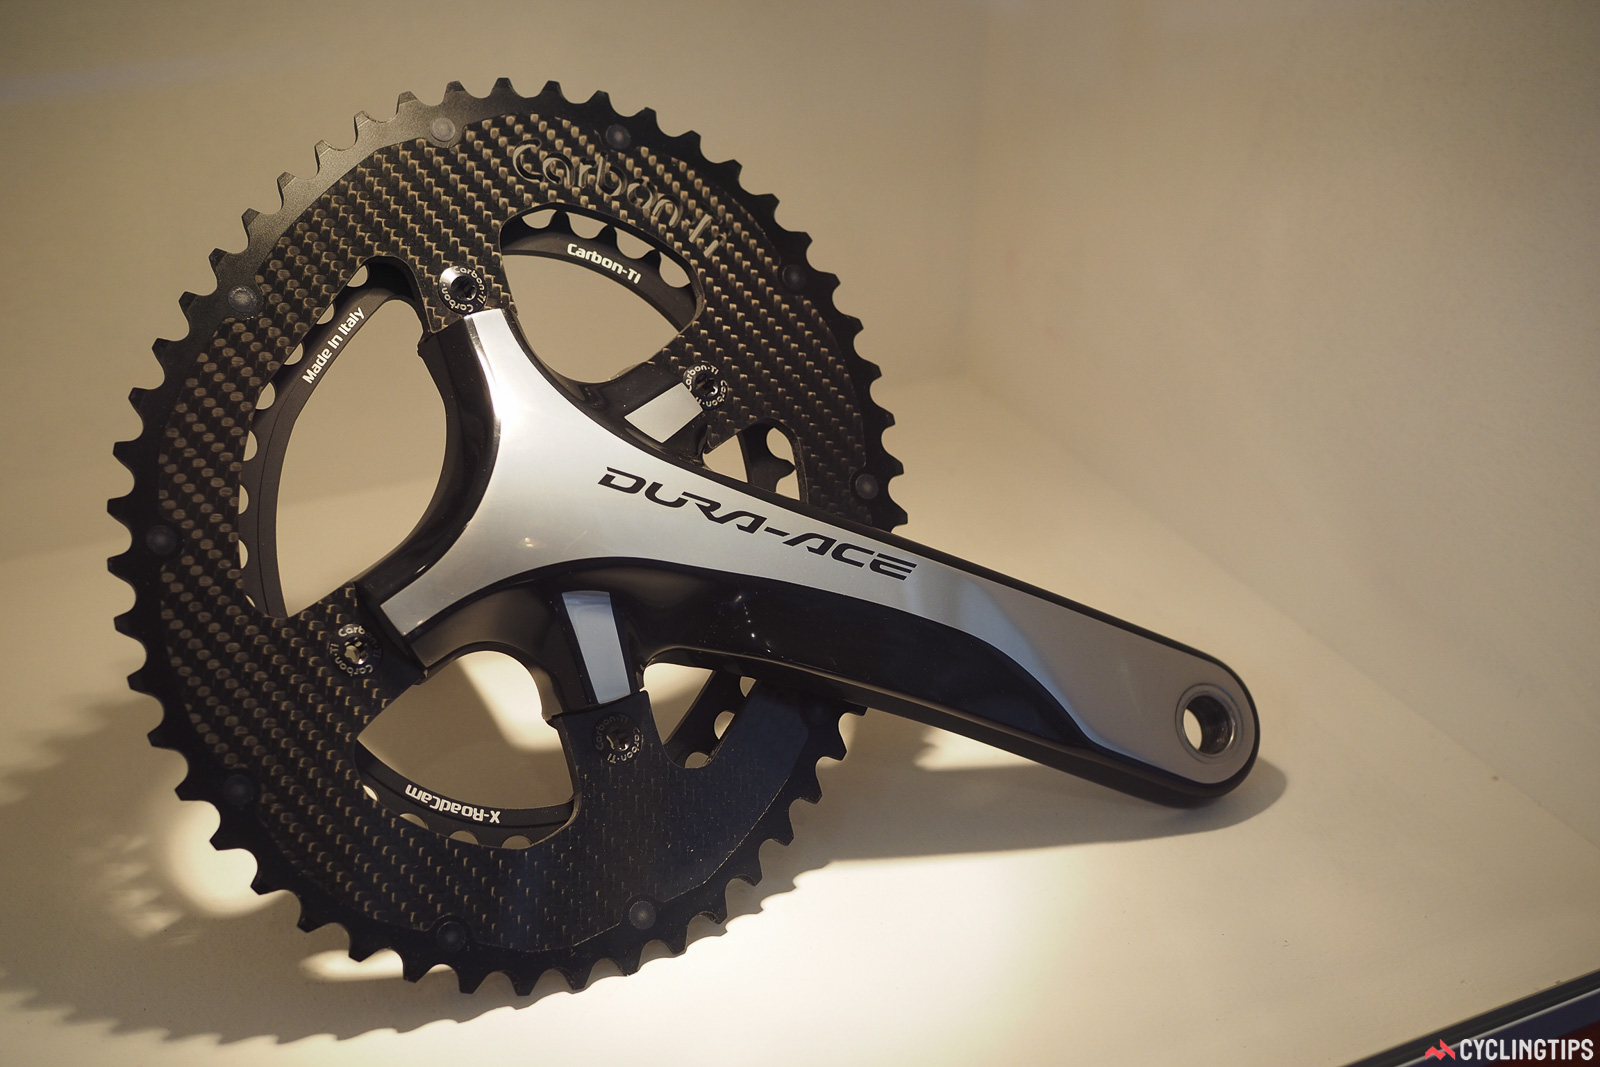 Italian company Carbon Ti offers its own take on non-round chainrings with a liberal dose of carbon fiber that sheds a surprising amount of weight. Moreover, they're also ramped and pinned for at least the promise of good shifting performance. Photo: James Huang.